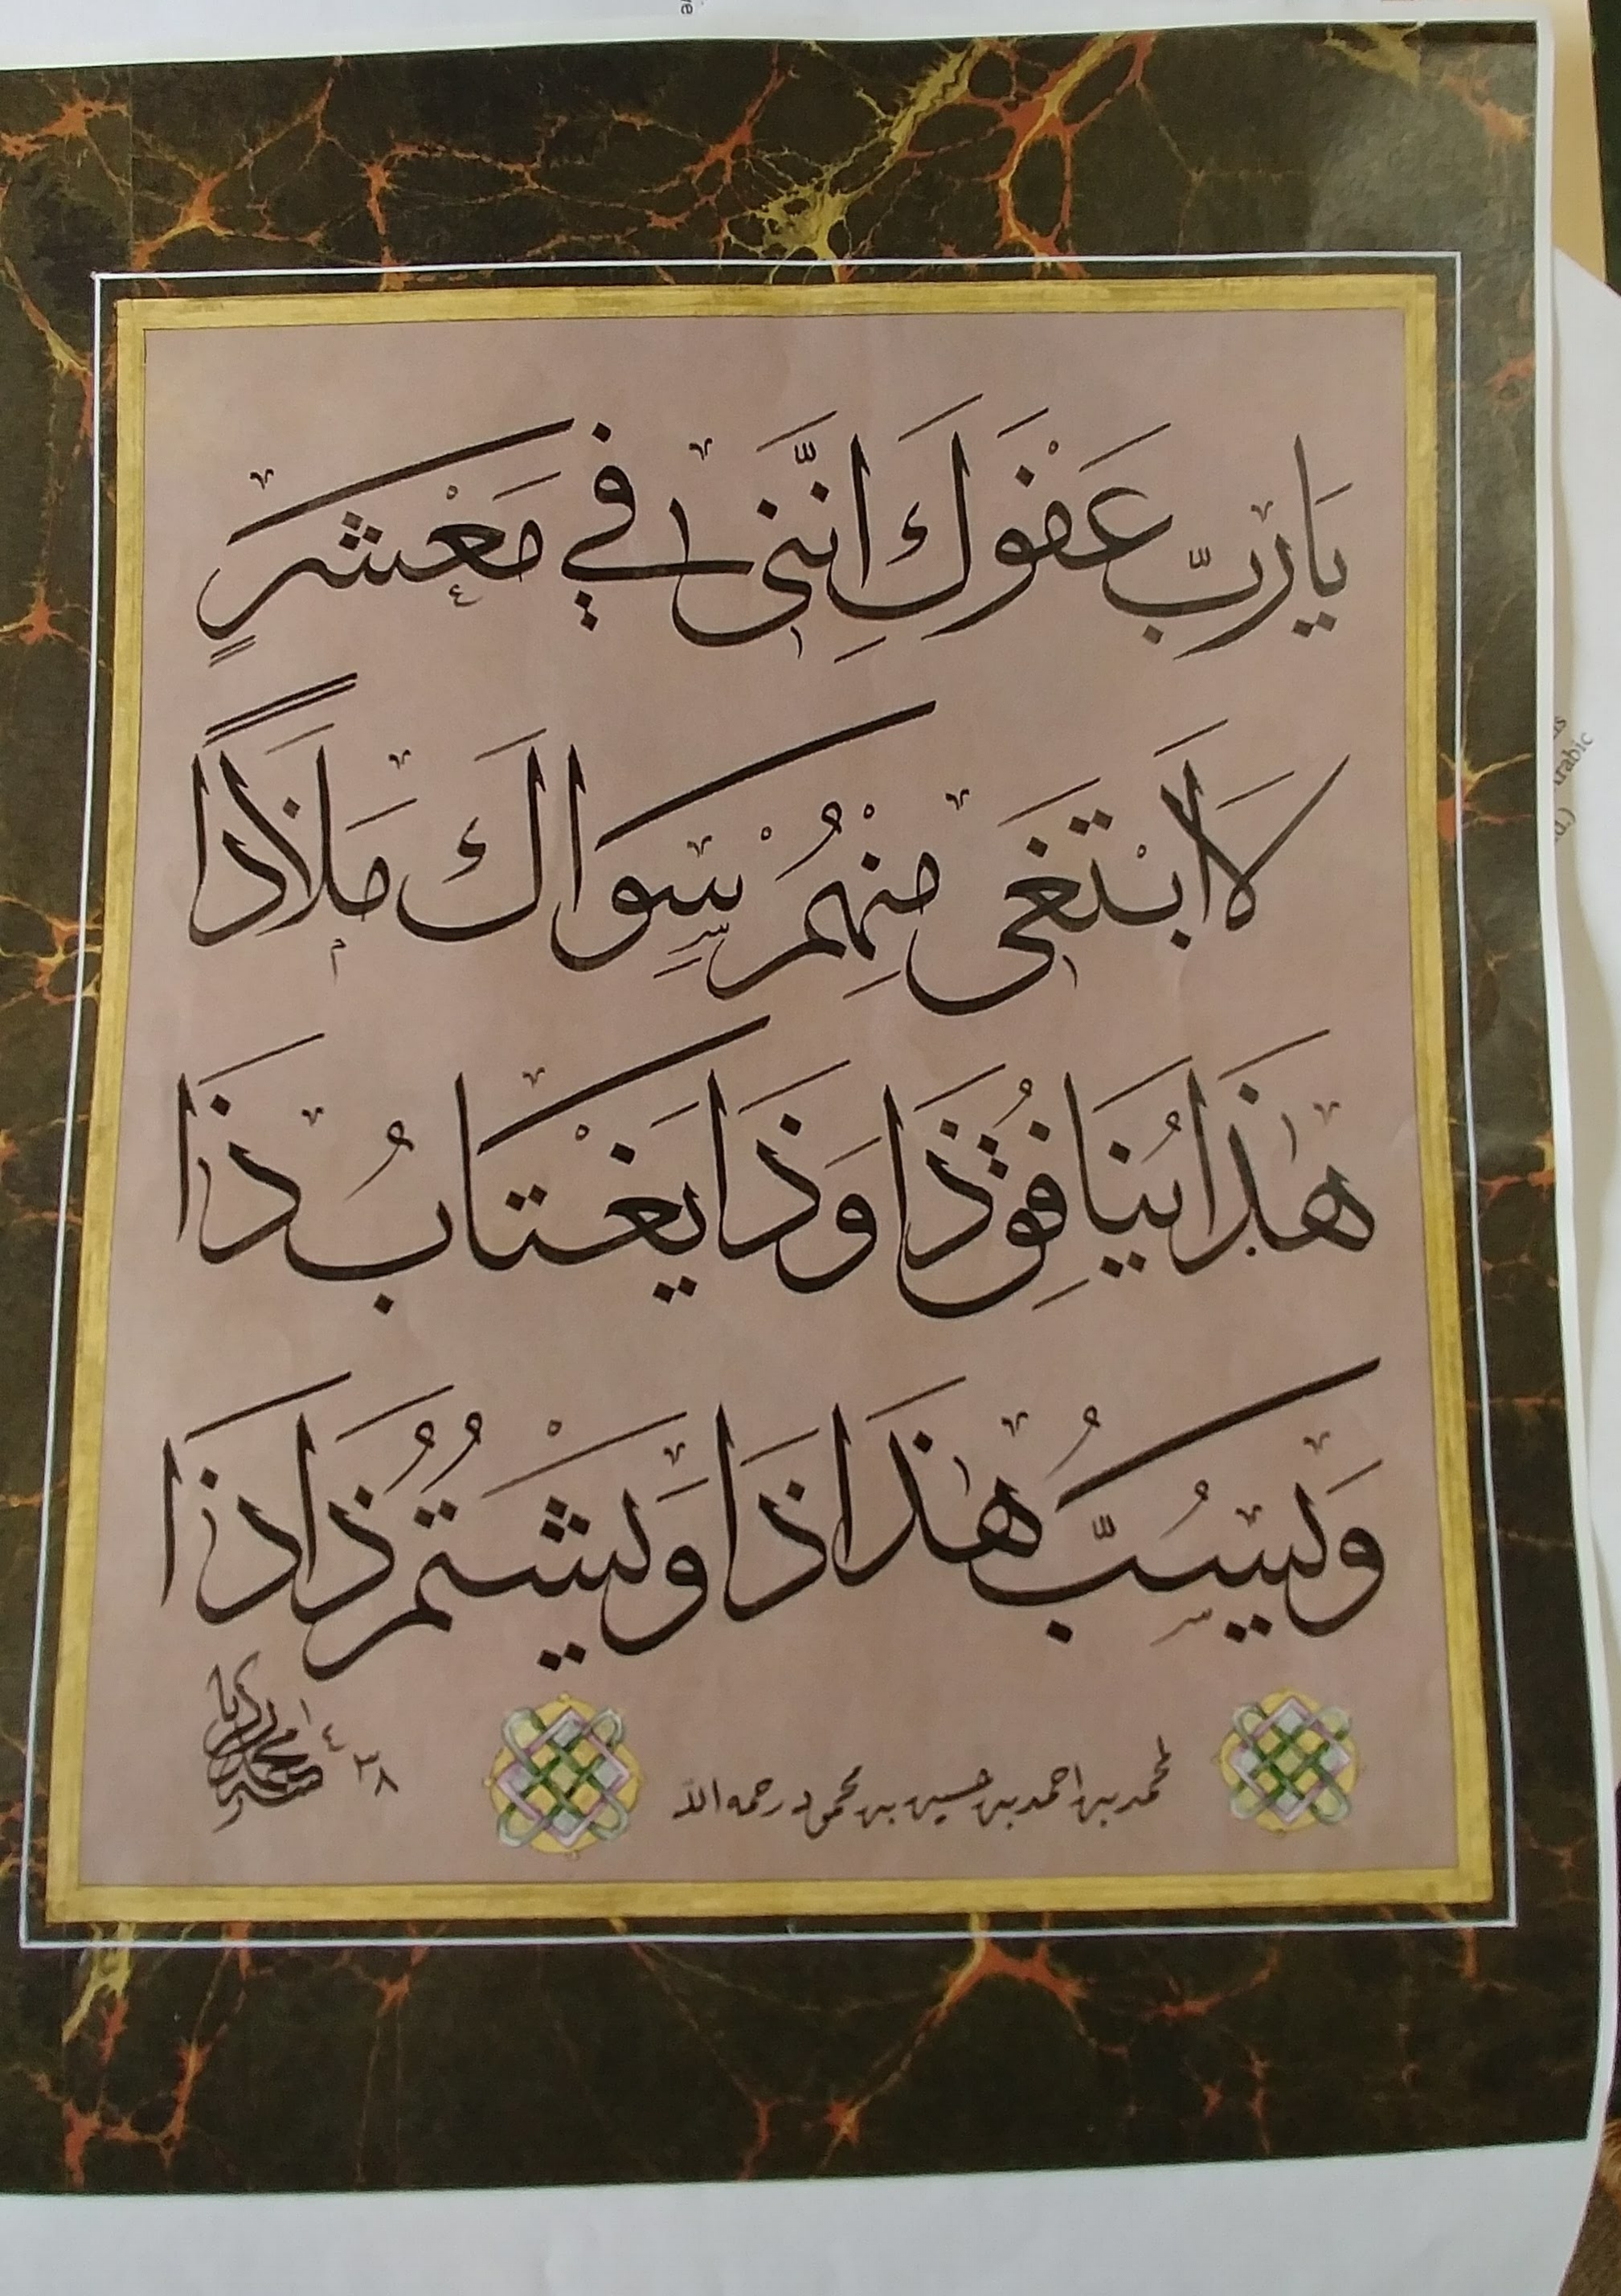 Title: This and That (2017); Script: Thuluth; Media: Ink, gouache, gold on ahar paper, ebru paper borders. Signed and dated by: Mohamed Zakariya